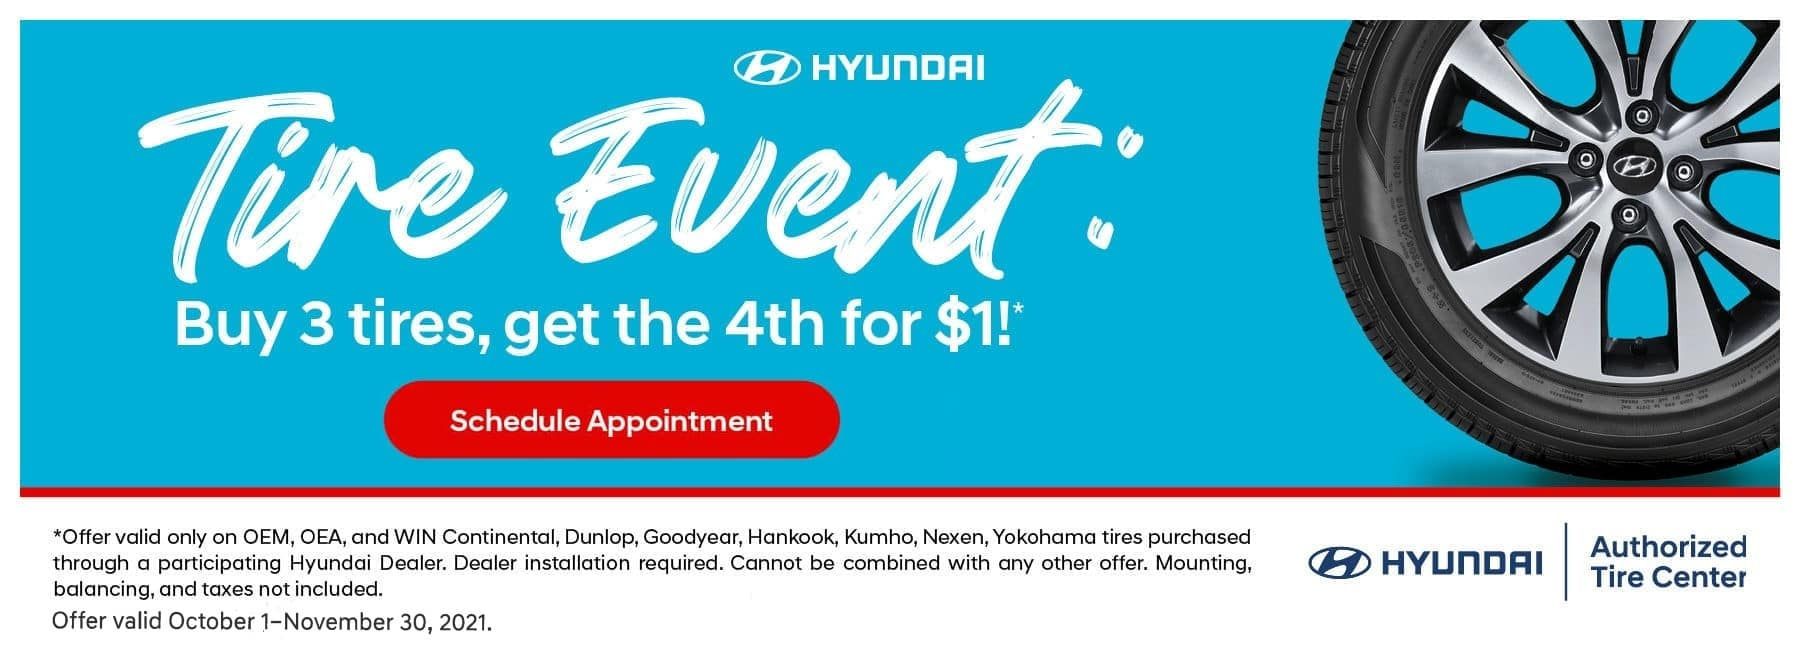 Tire Event: Get 3 Tries, get the 4th for $1